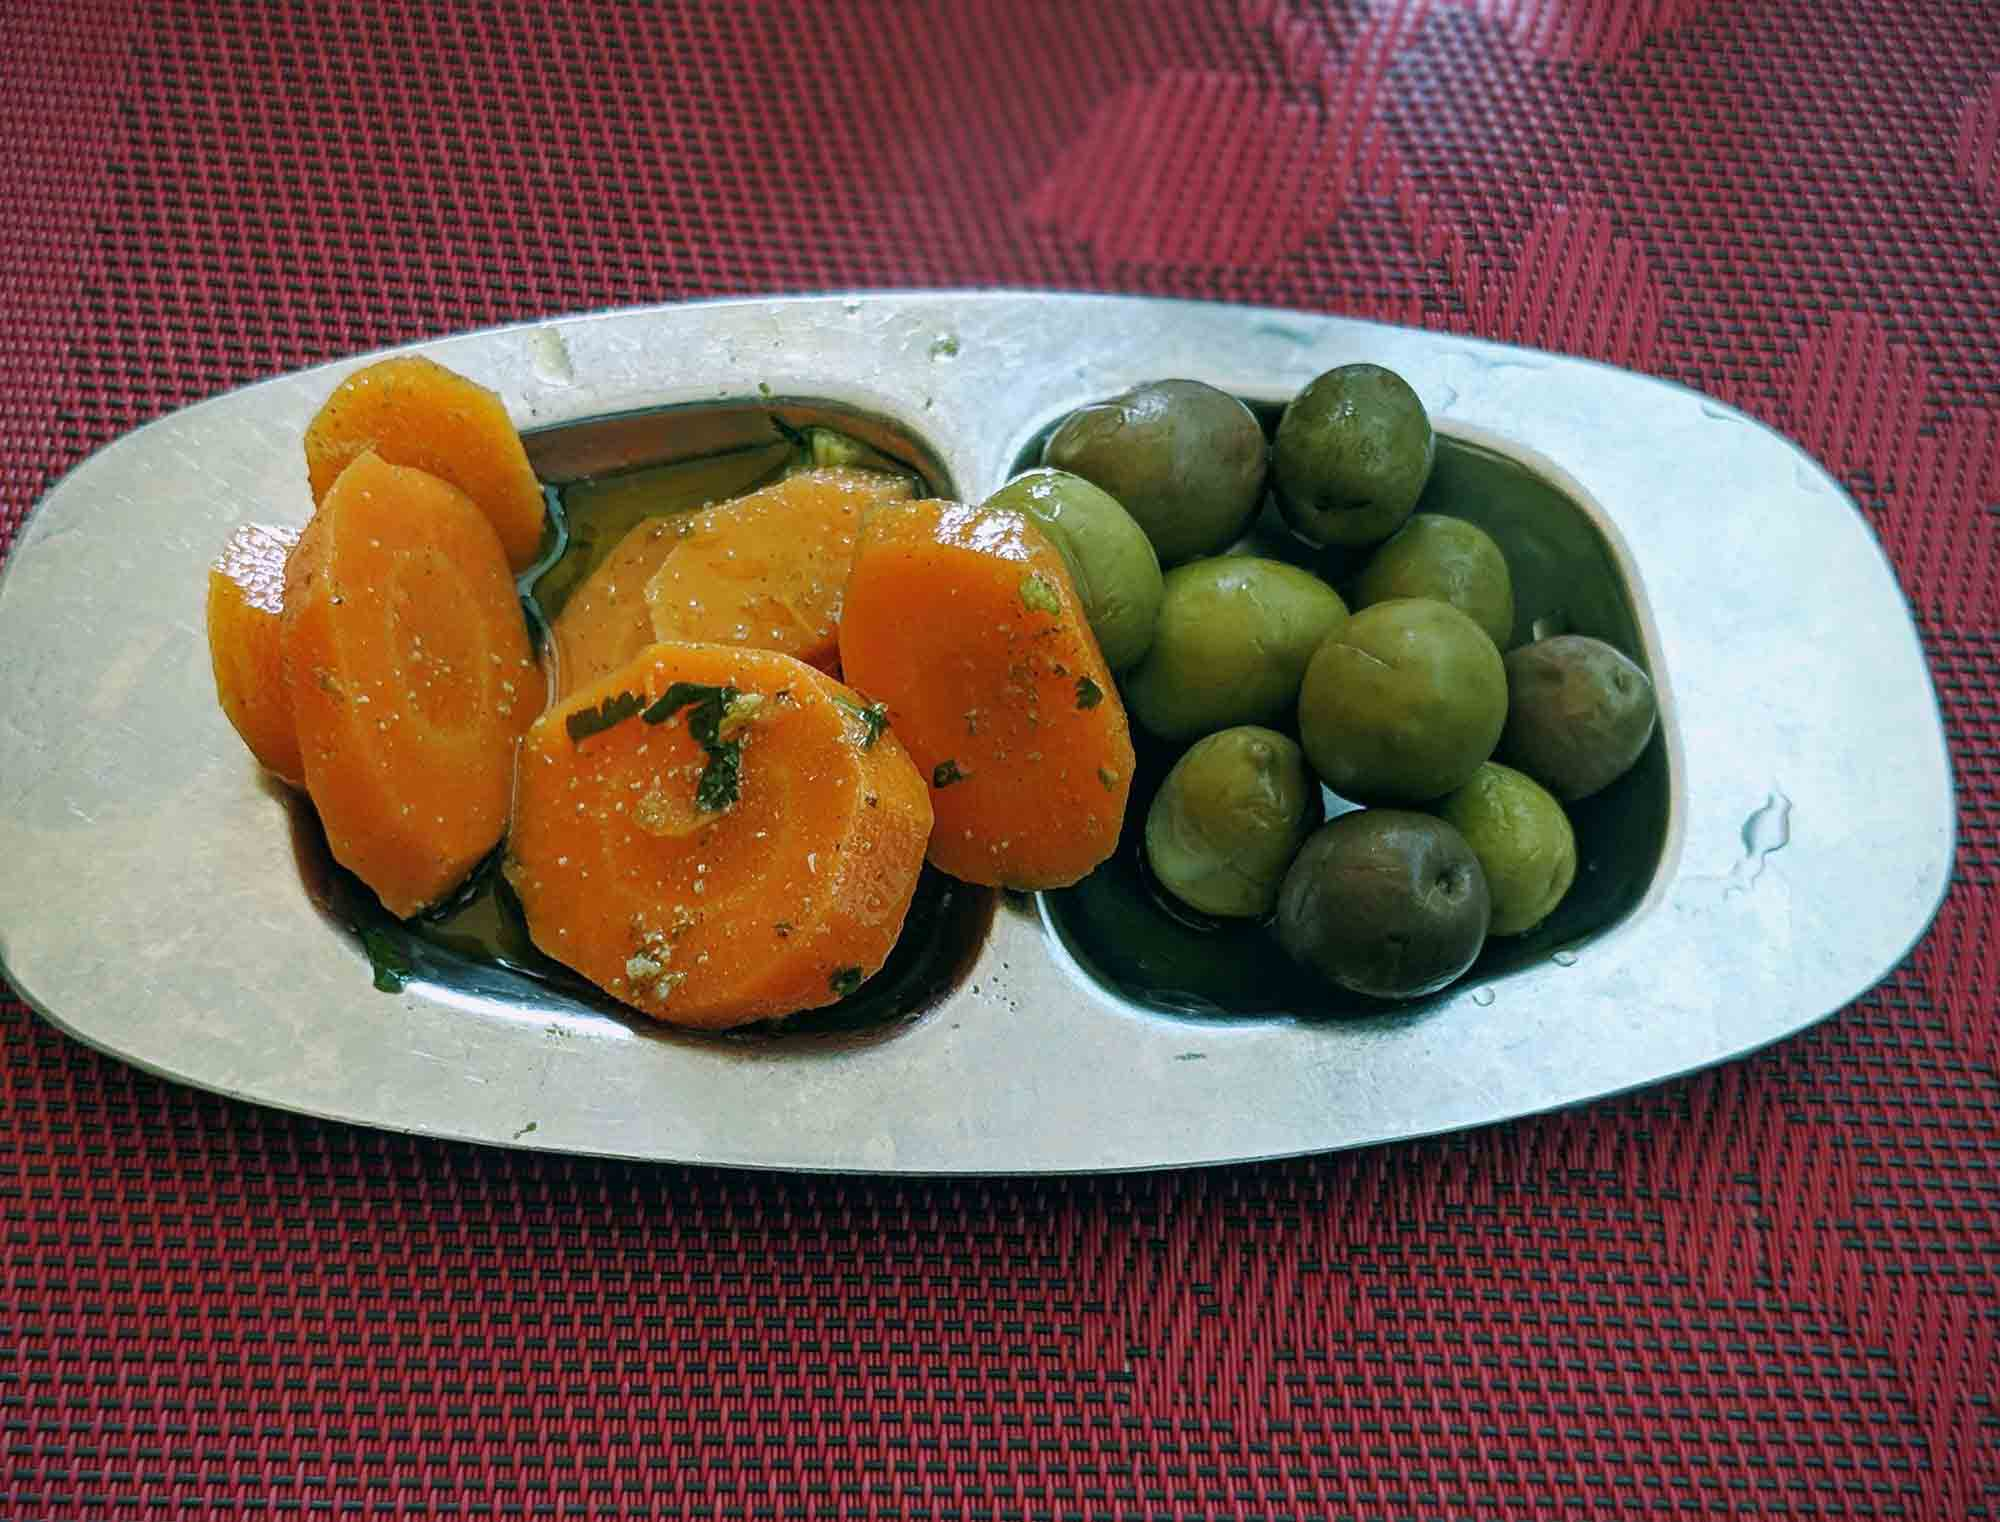 Algarve carrots and olives